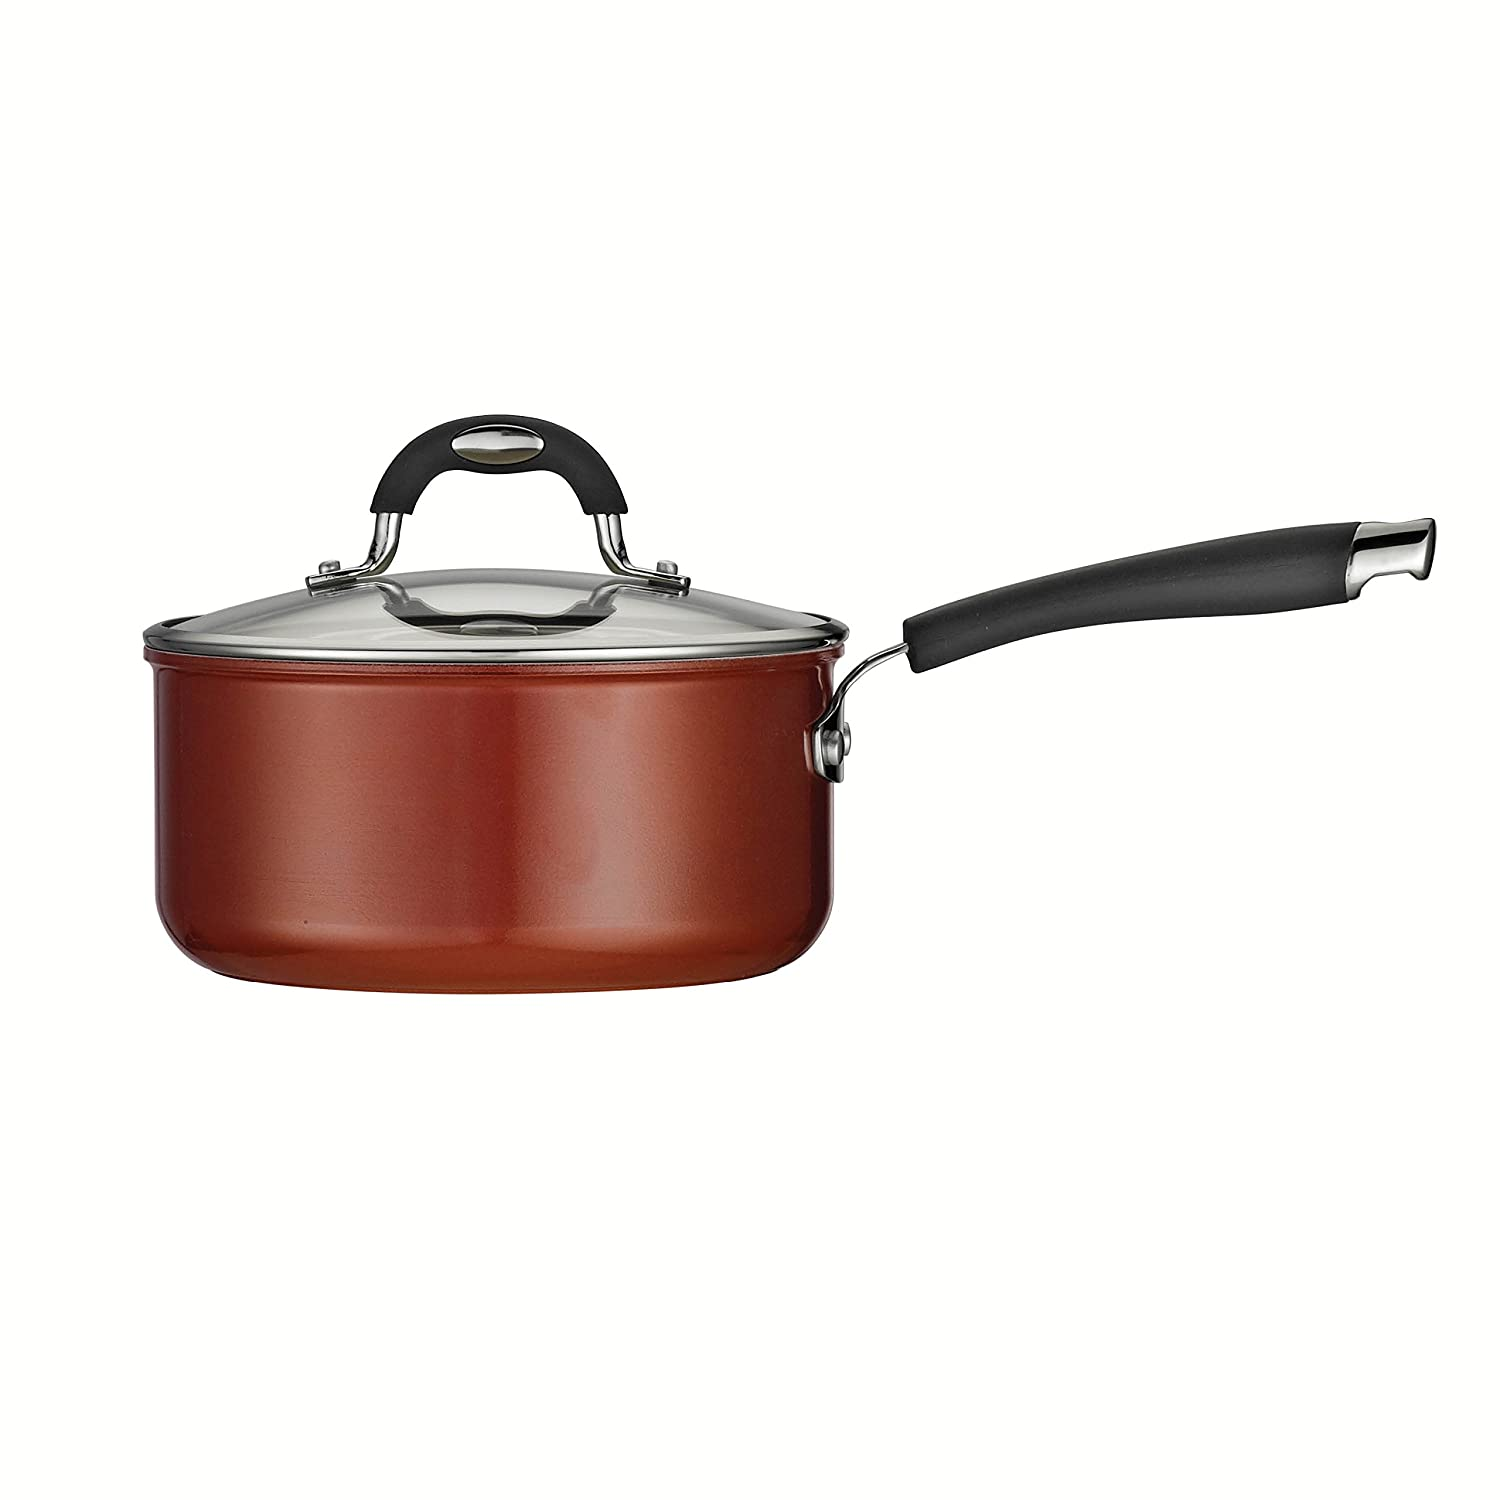 Tramontina 80110/049DS Style Ceramica 01 Covered Sauce Pan, 3-Quart, Metallic Copper by Tramontina: Amazon.es: Hogar